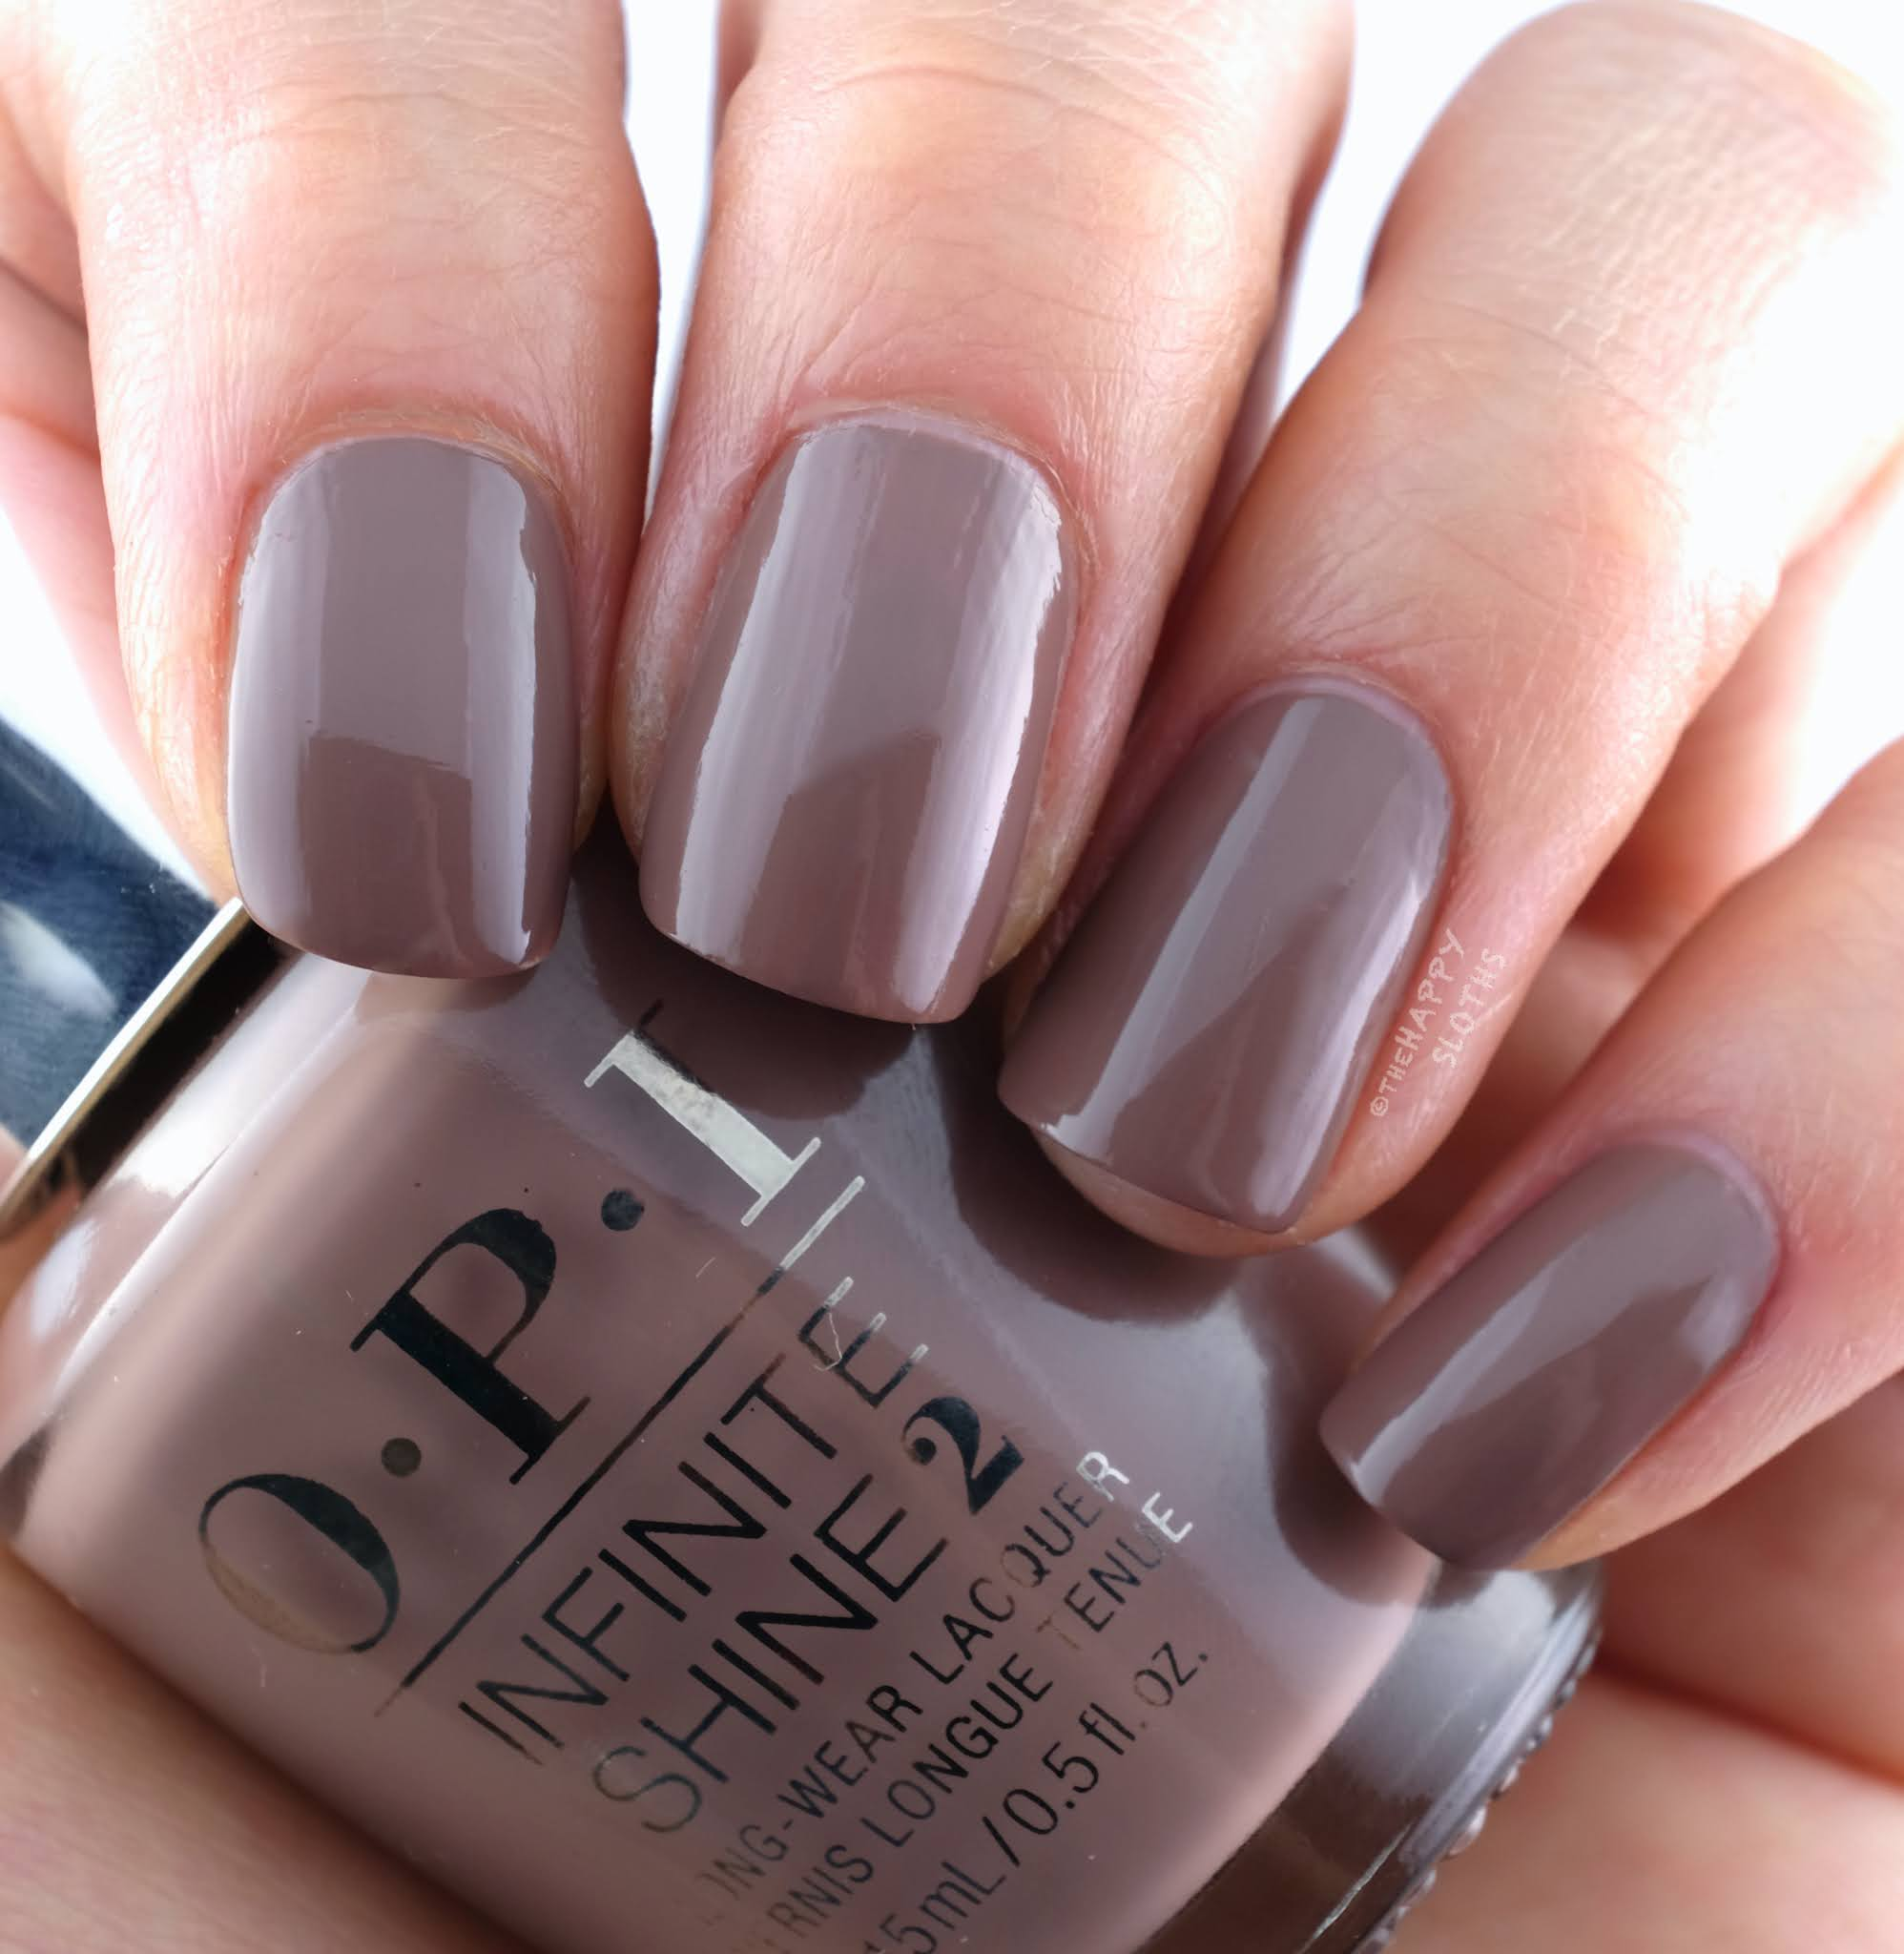 OPI Summer 2021 Malibu Collection   Bonfire Serenade: Review and Swatches